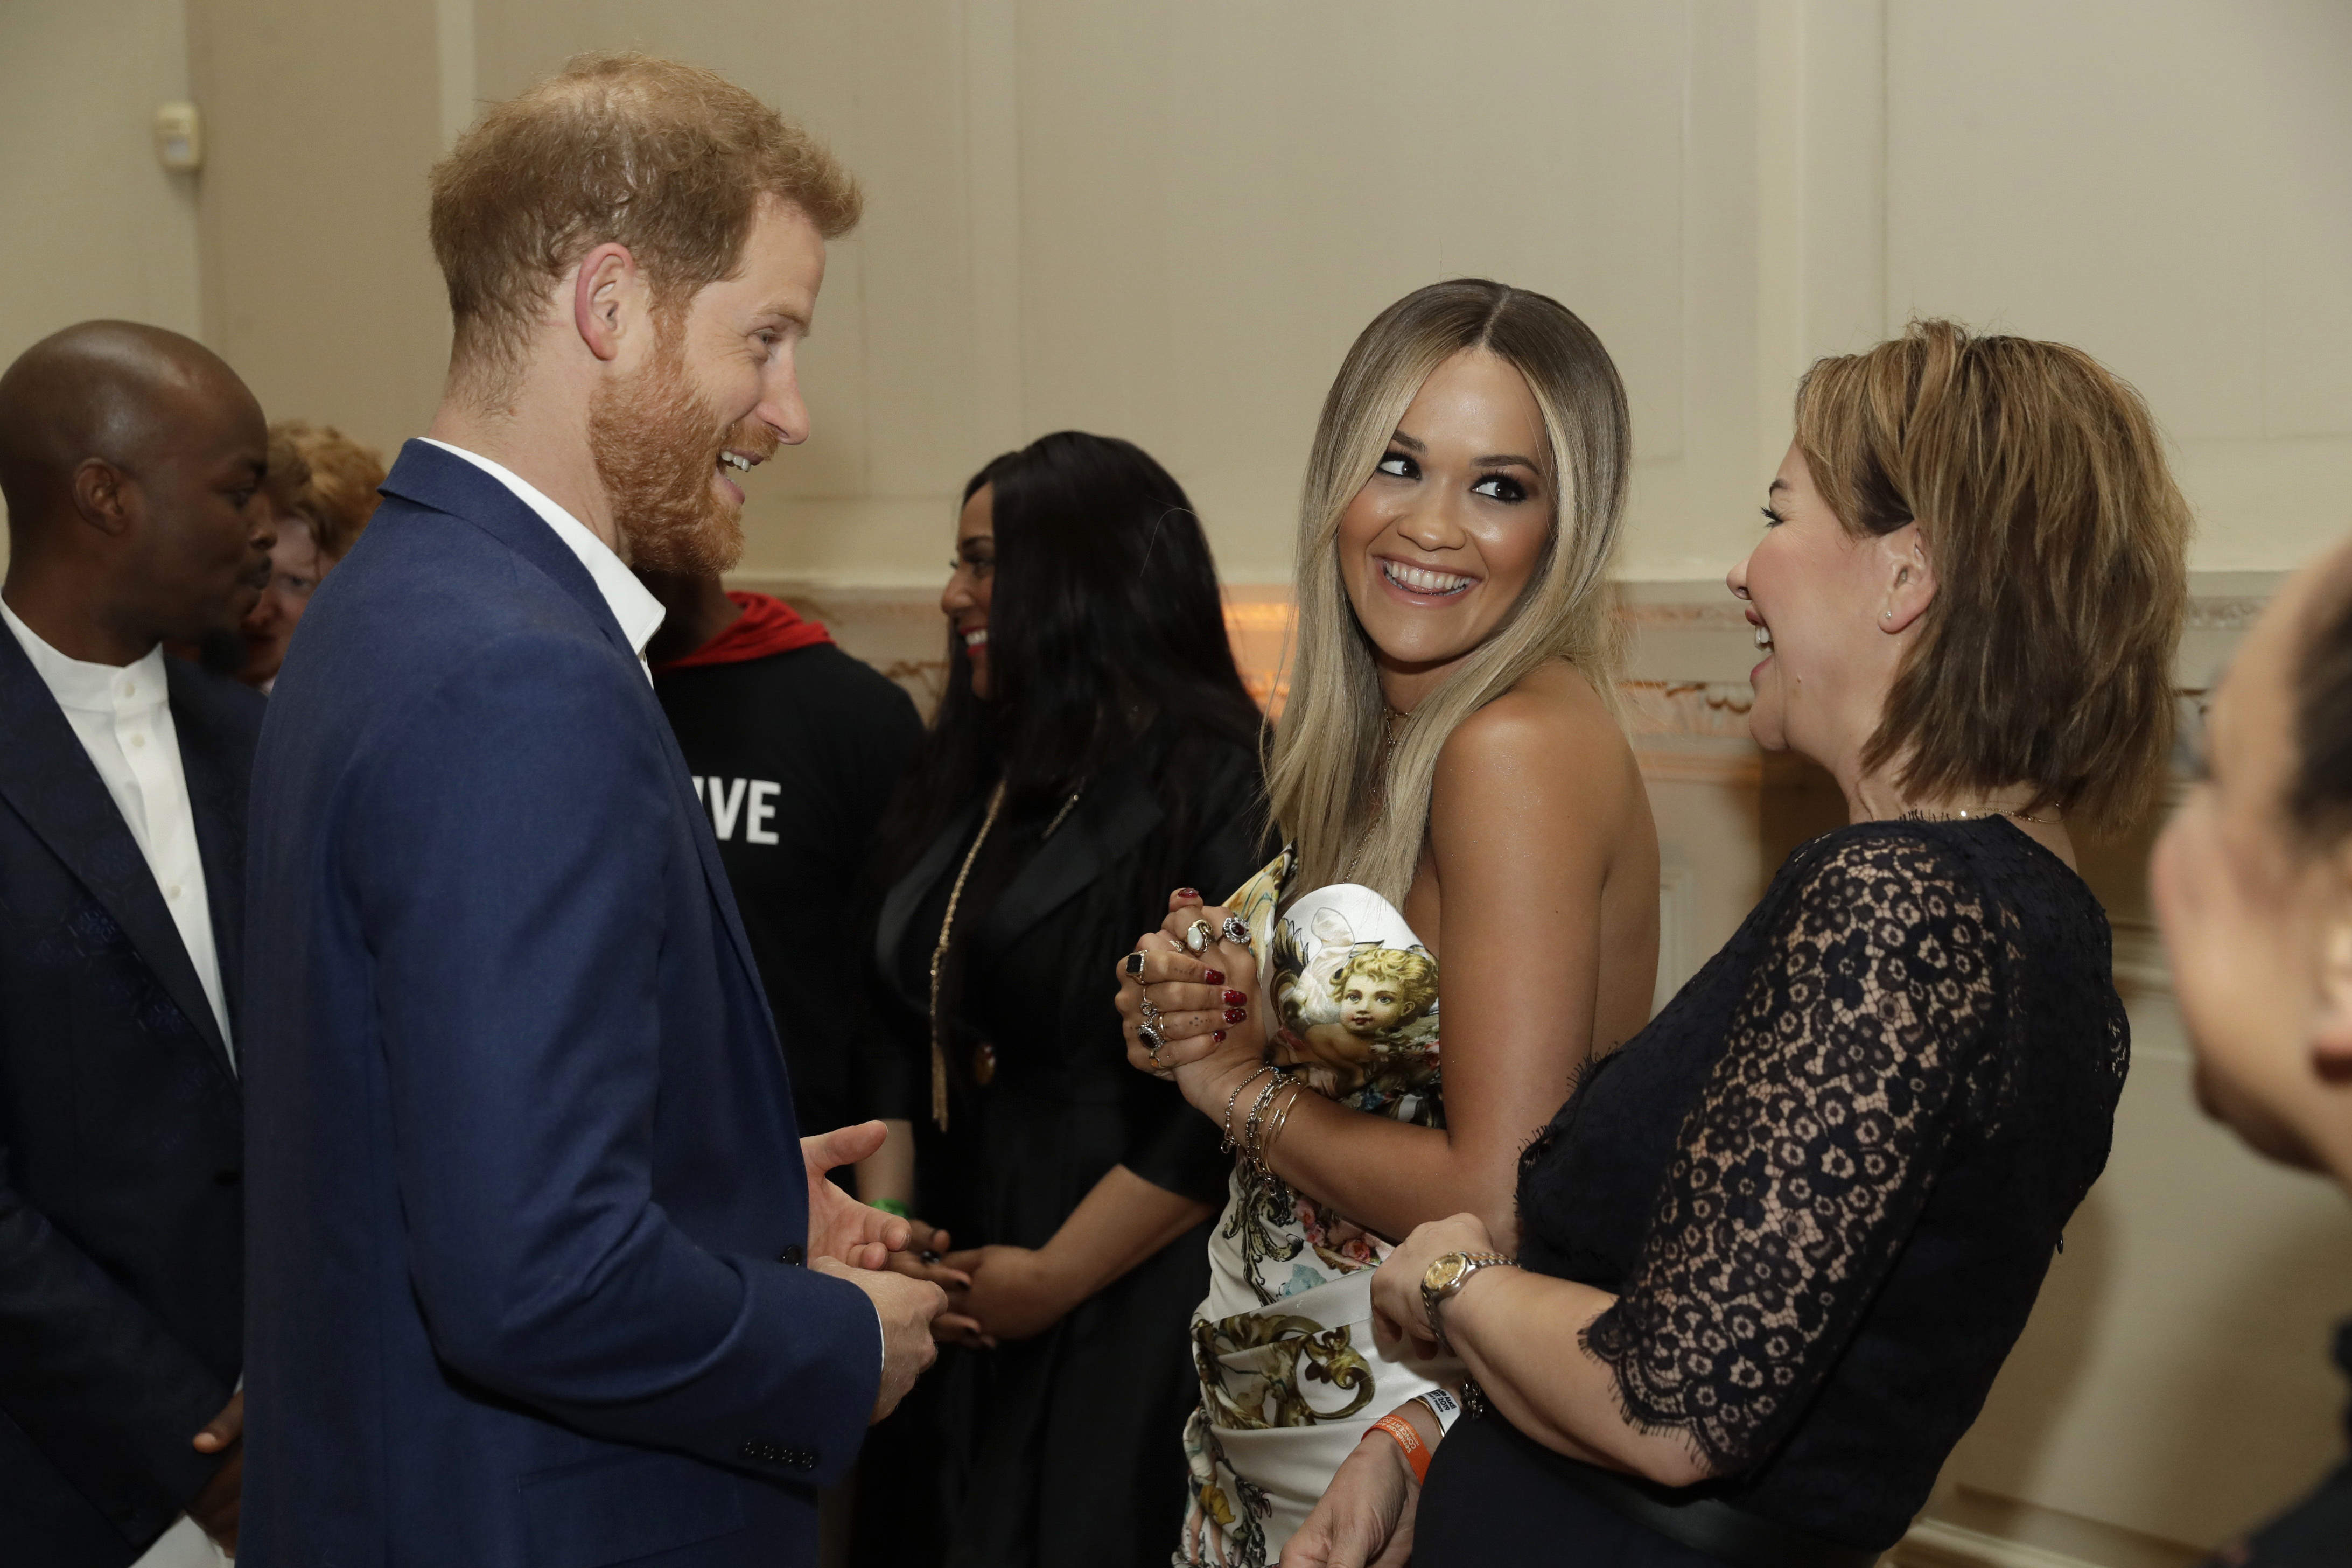 The Duke of Sussex speaks to singer Rita Ora and her mum Vera Sahatciu during a reception before a concert hosted by Sentebale in Hampton Court Palace in East Molesey, to raise awareness and vital funds for the Duke's charity, Sentebale, which helps young people in southern Africa affected by HIV.